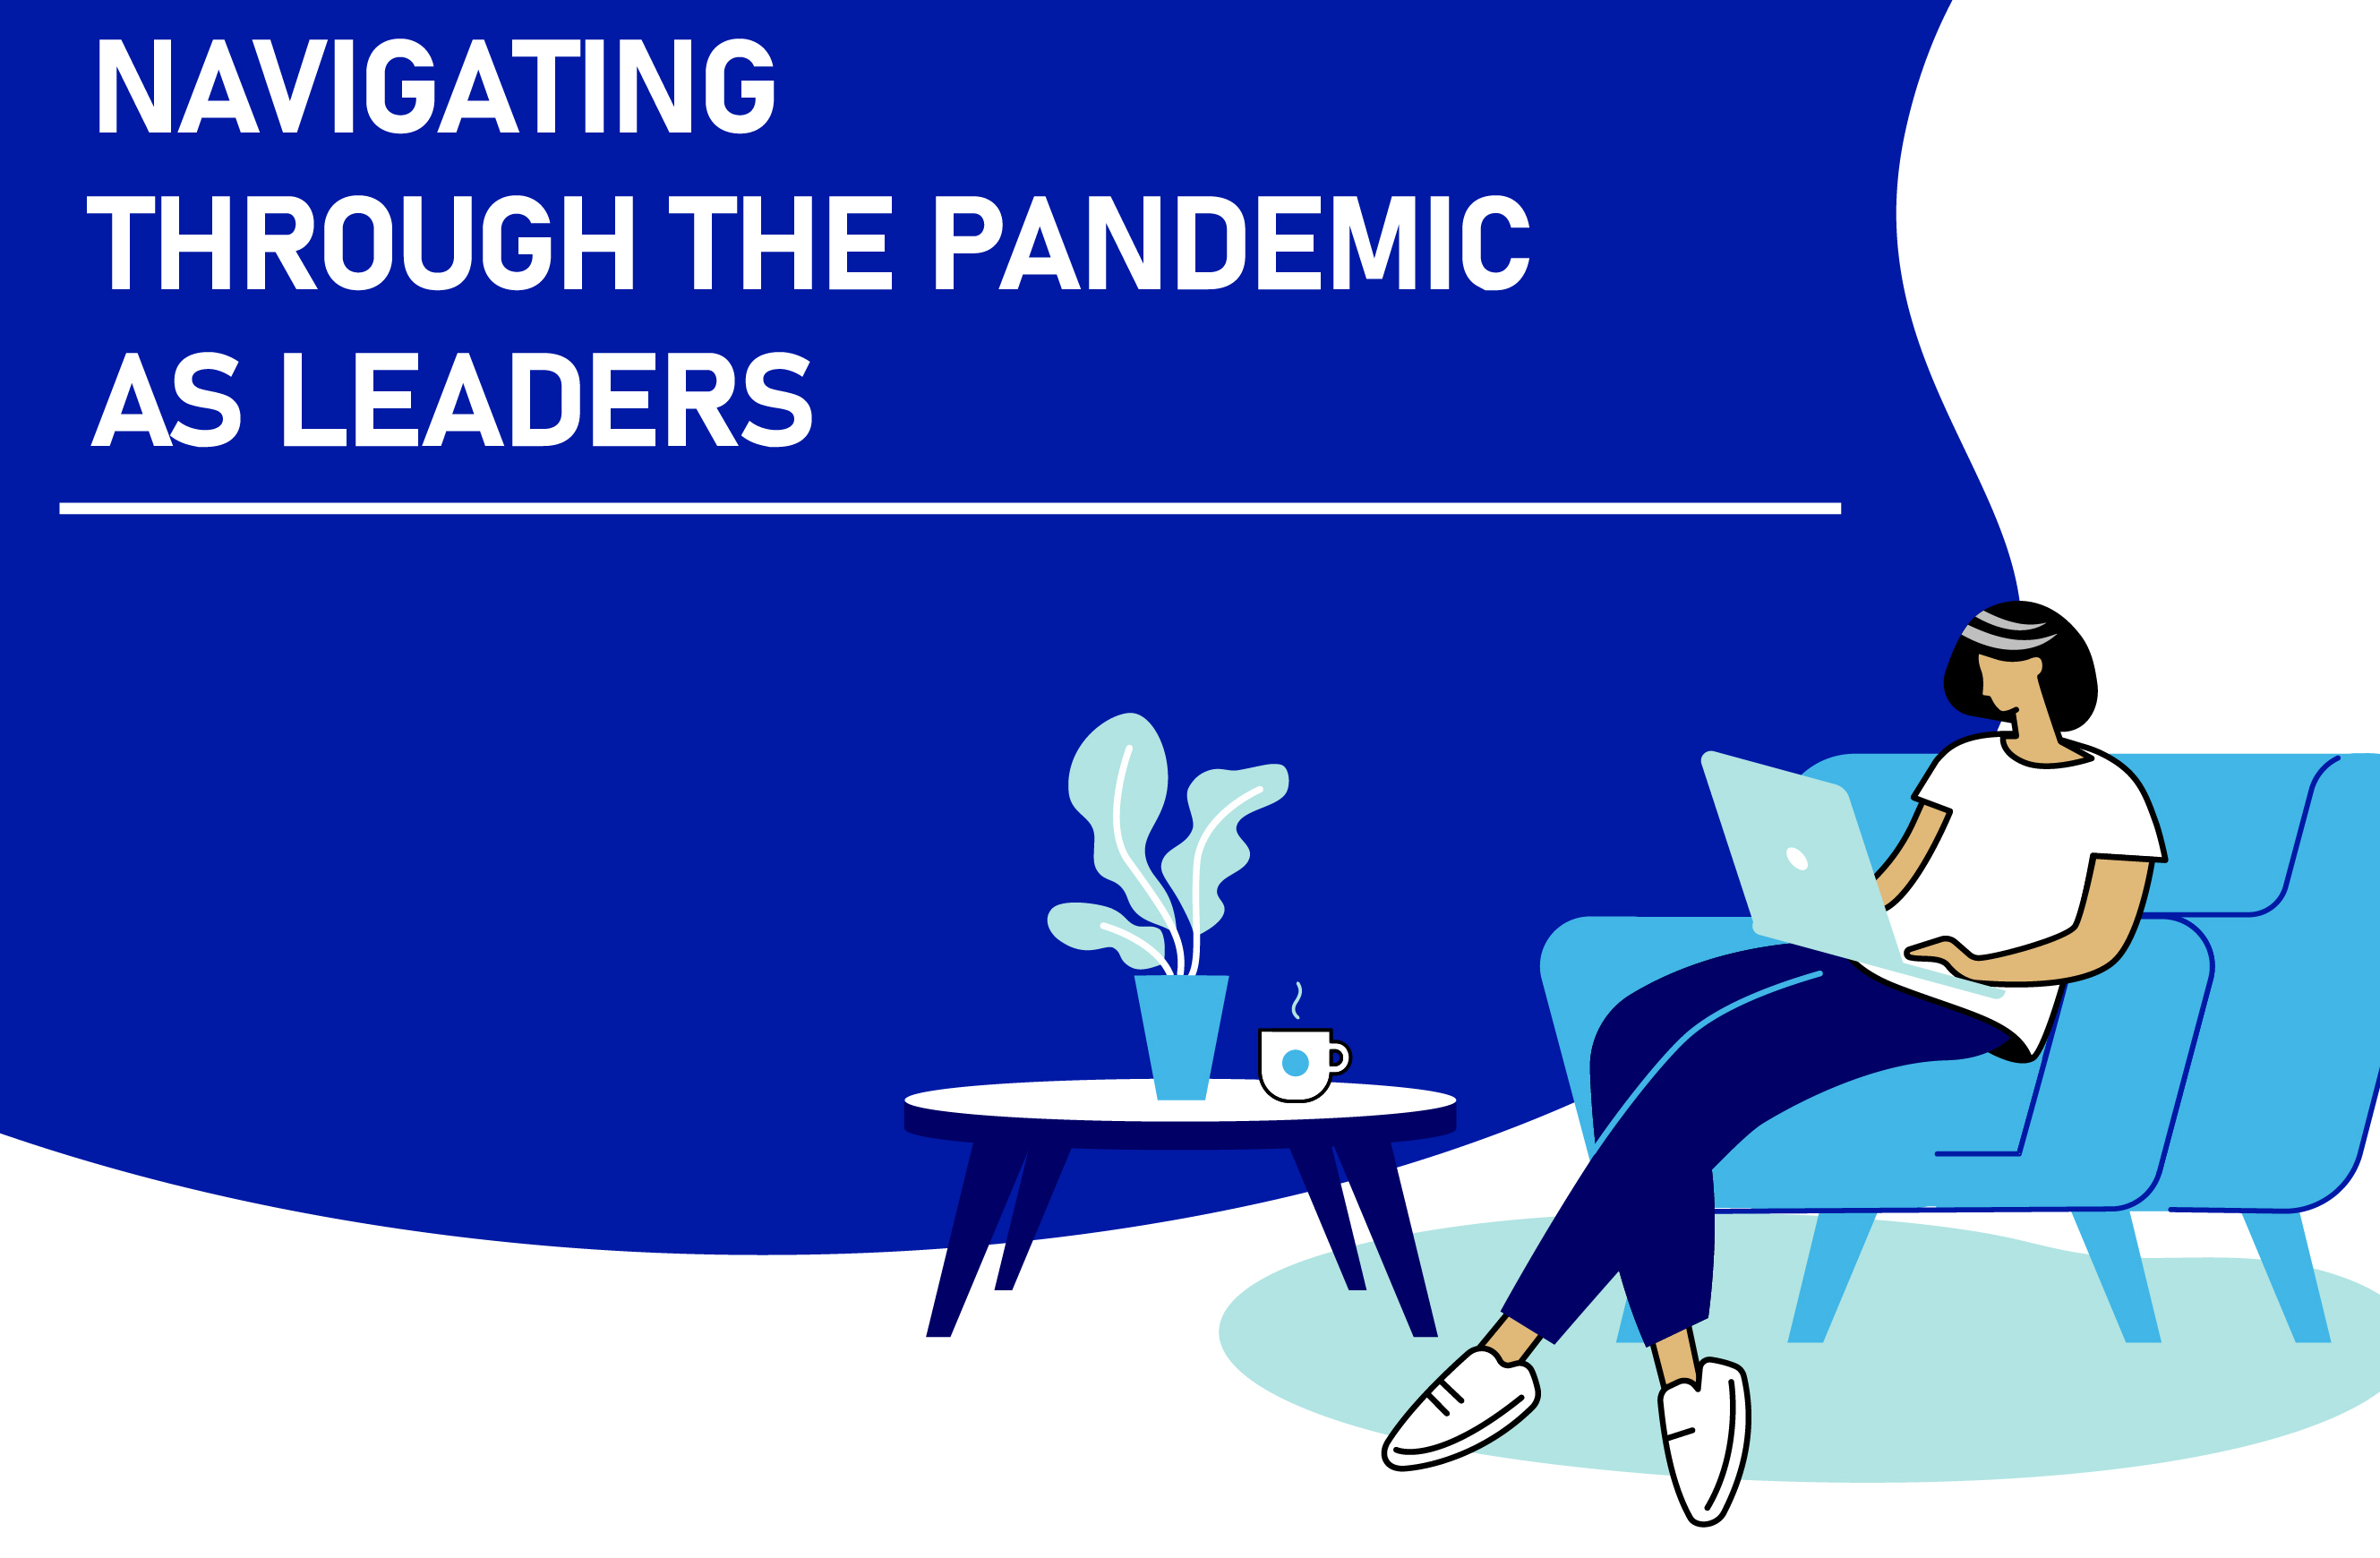 NAVIGATING THROUGH THE PANDEMIC AS LEADERS